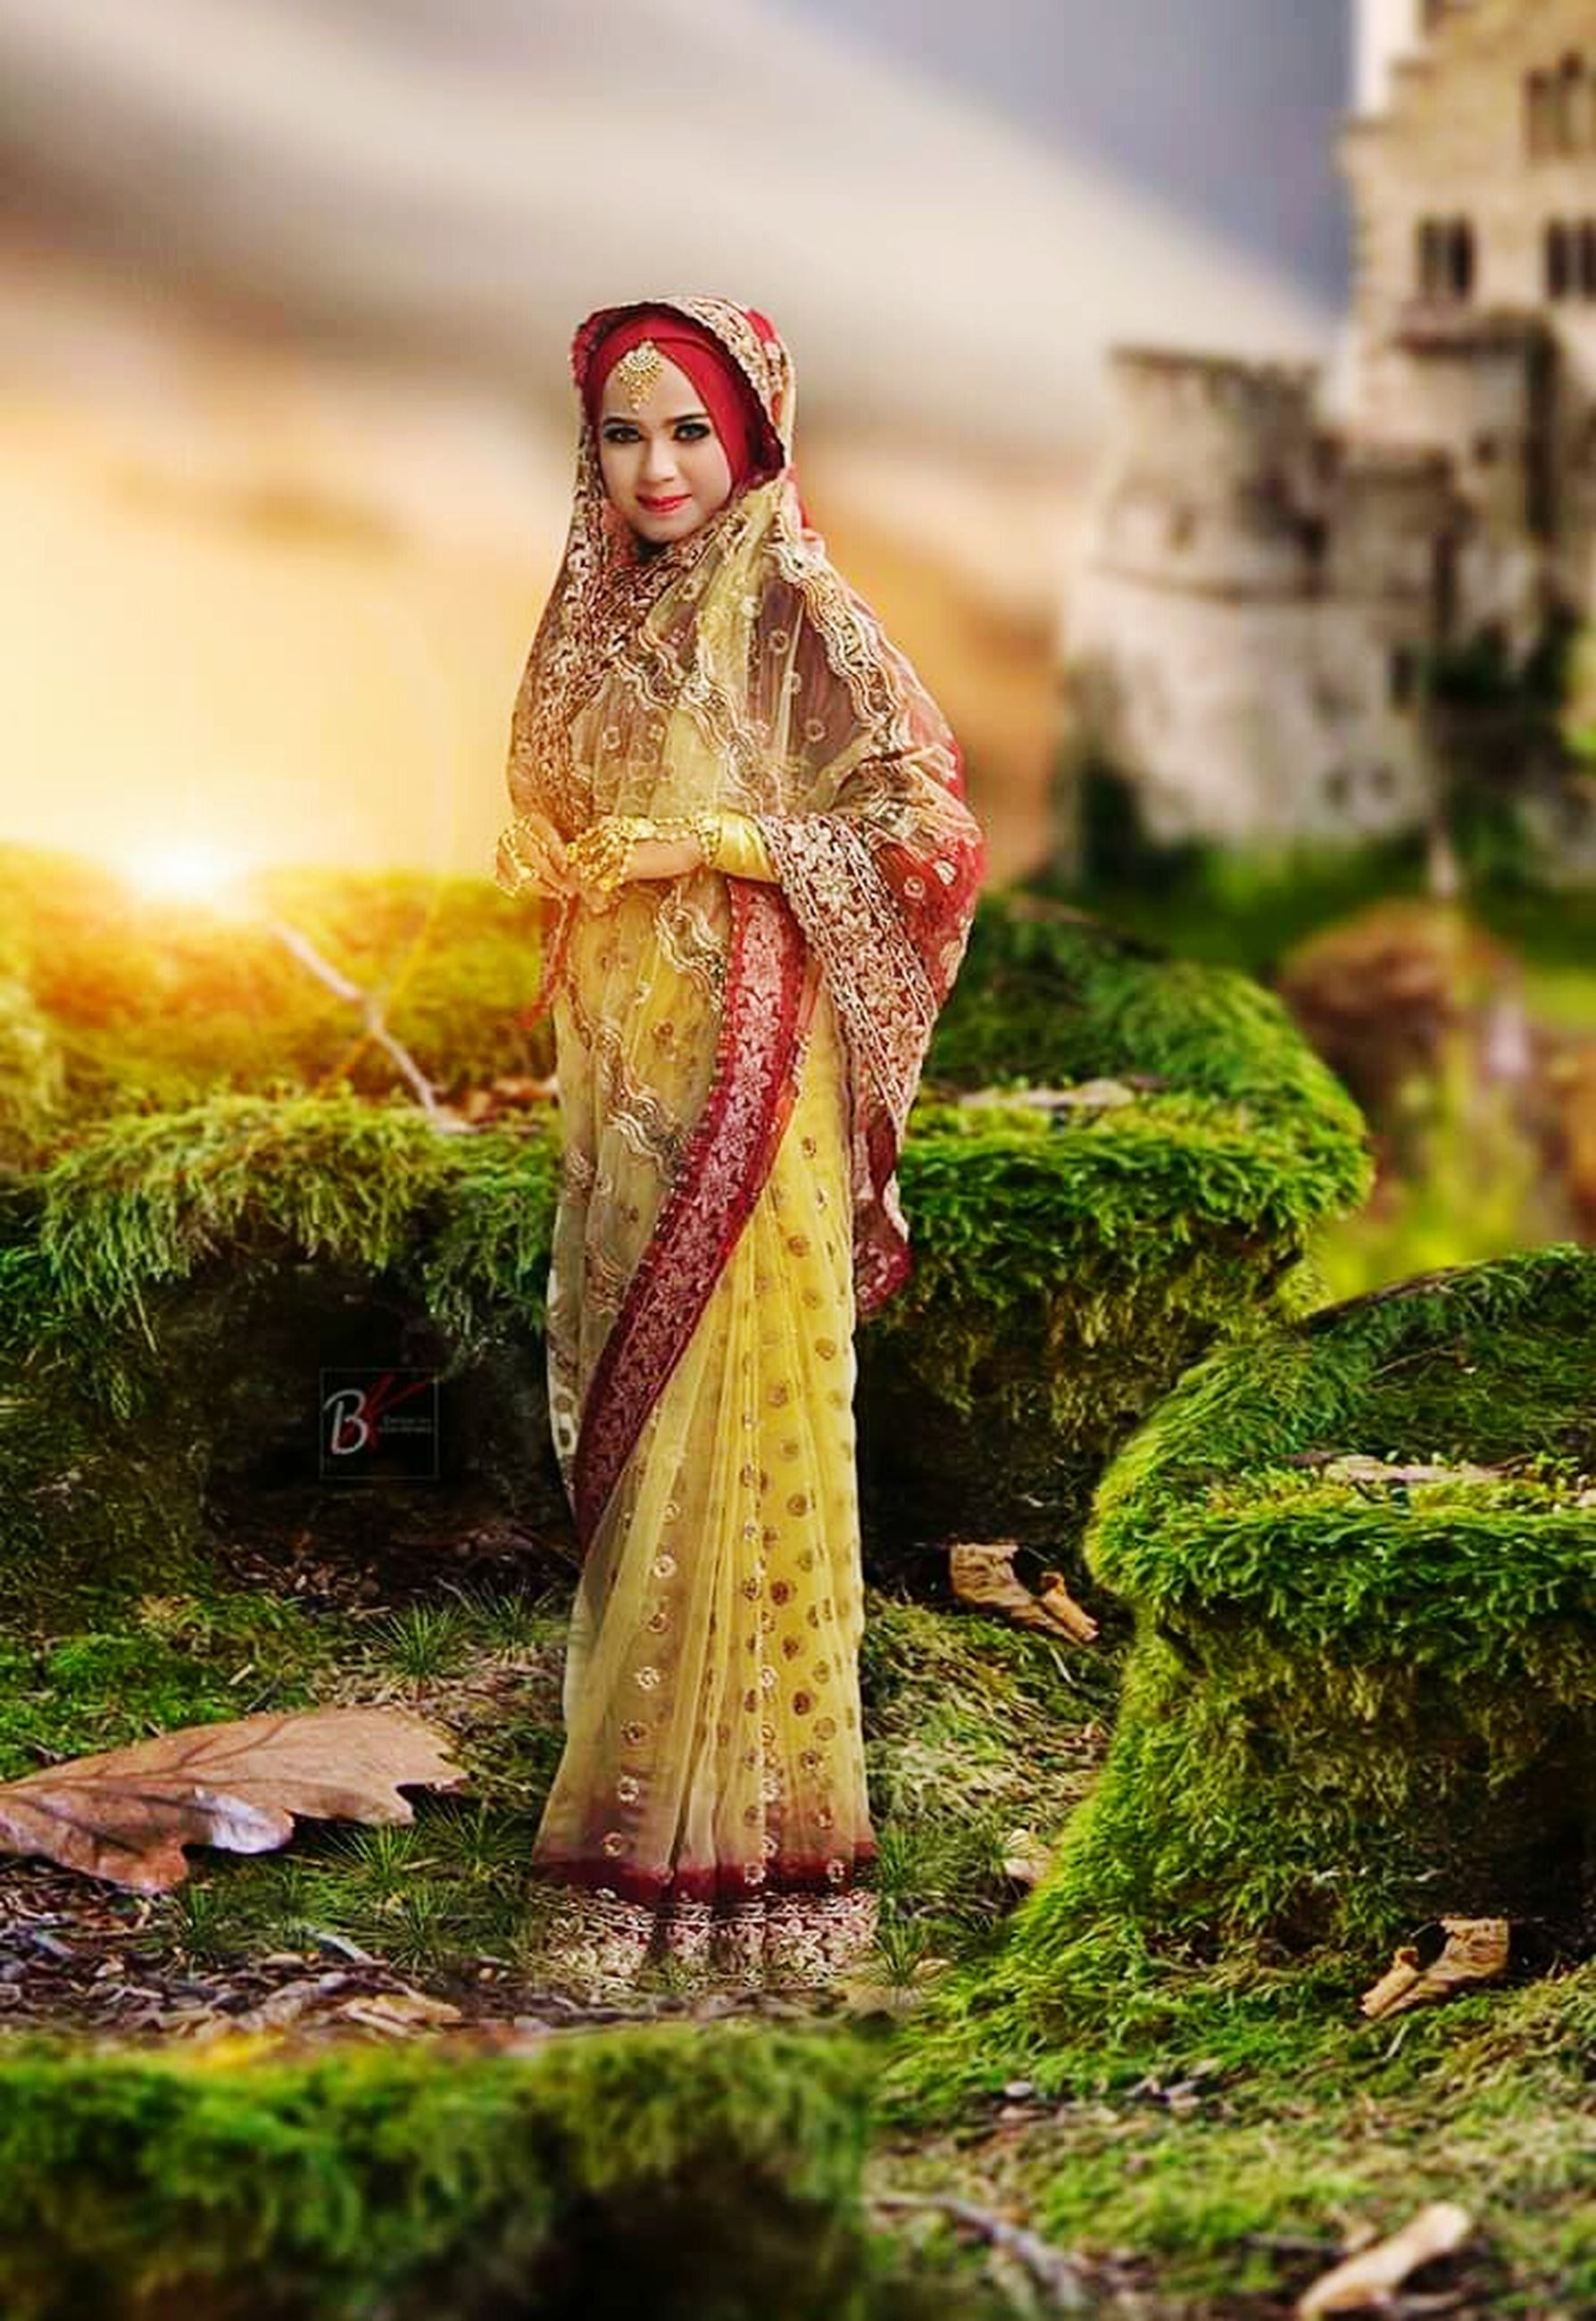 clothing, celebration, women, adult, one person, standing, full length, traditional clothing, young adult, architecture, beautiful woman, lifestyles, costume, young women, fun, real people, day, selective focus, outdoors